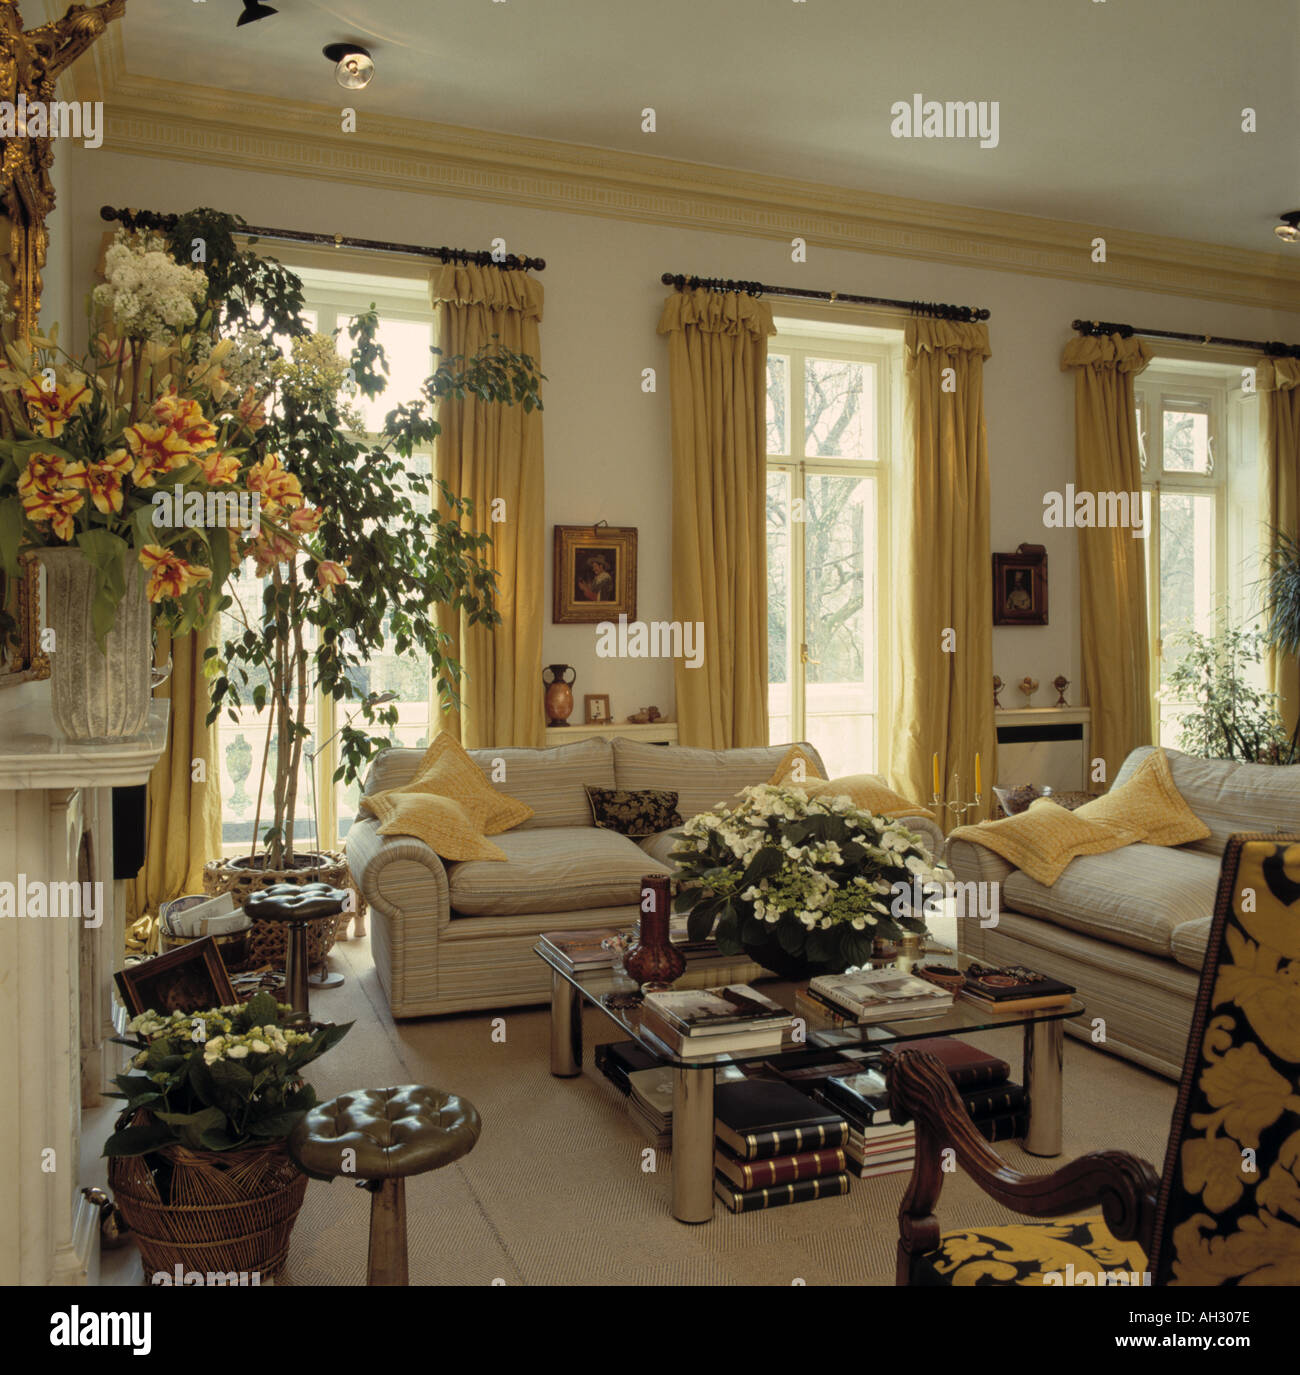 Incroyable Yellow Curtains French Windows In Traditional Living Room With Cream Sofas  And Floral Arrangements